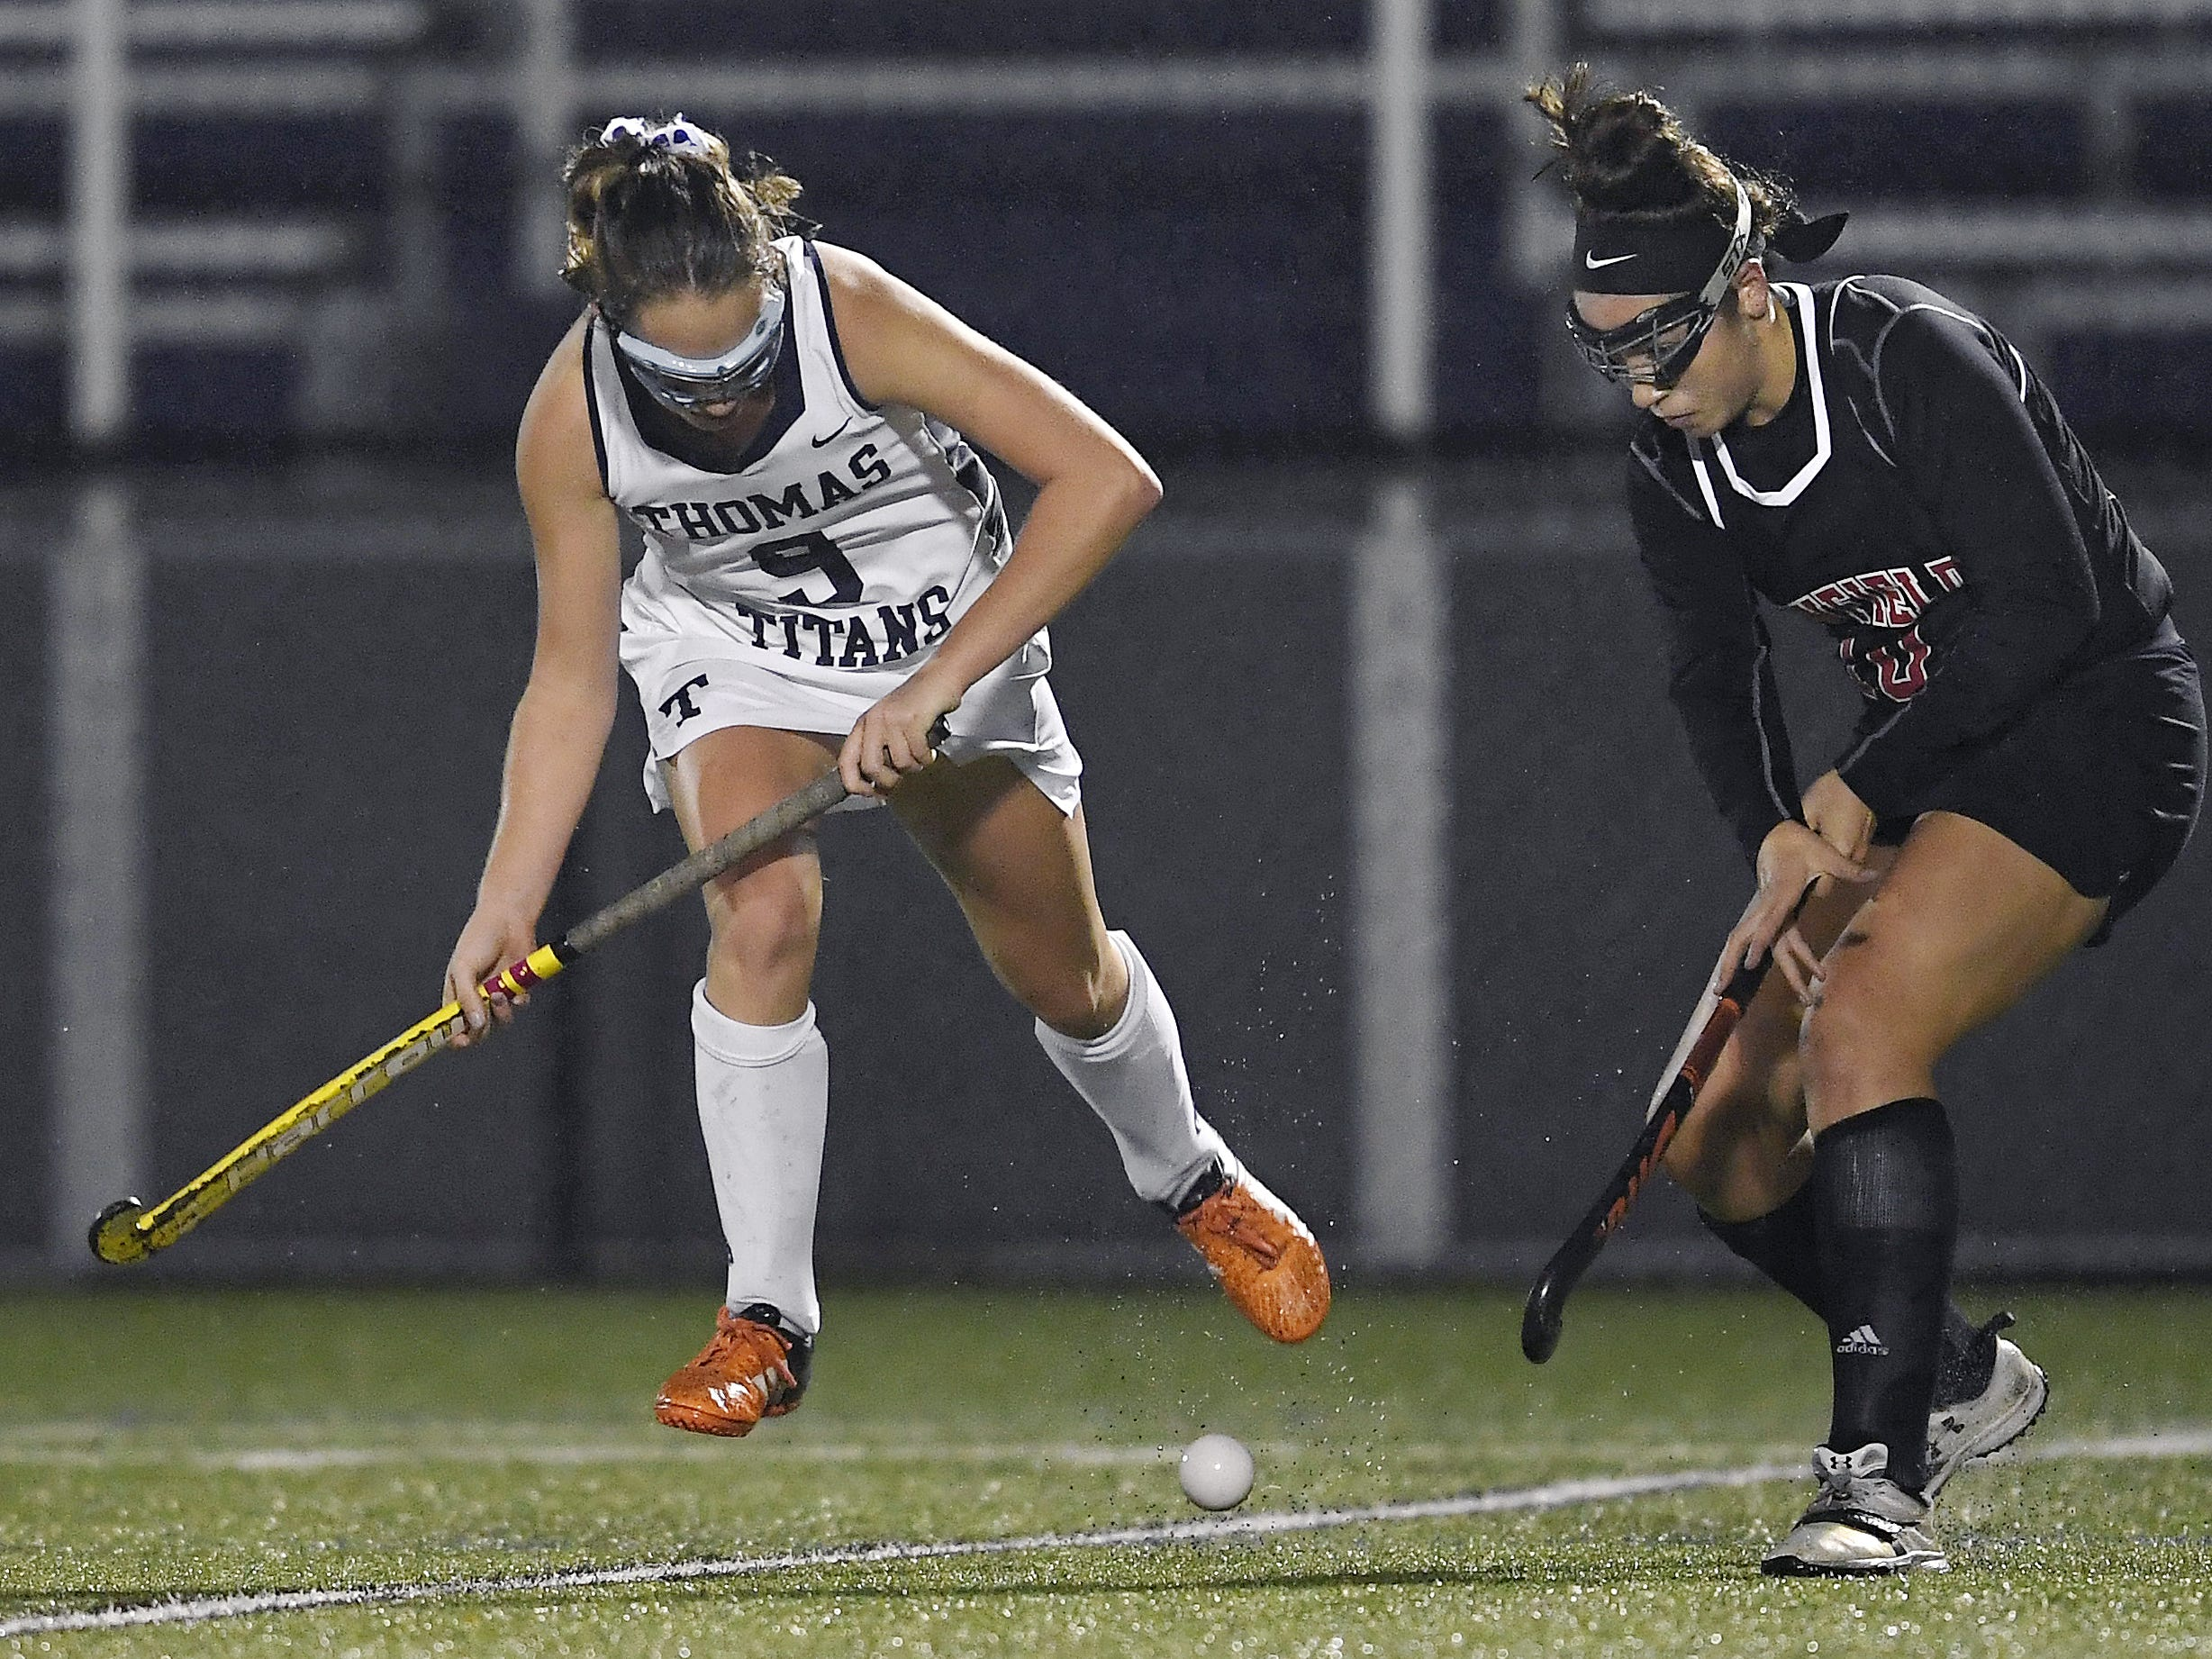 Webster Thomas' Jenna Parrish, left, and Penfield's Jessica Rinere vie for the ball during a regular season game played at Webster Thomas High School, Monday, Oct. 1, 2018. Penfield beat Webster Thomas in overtime 2-1.